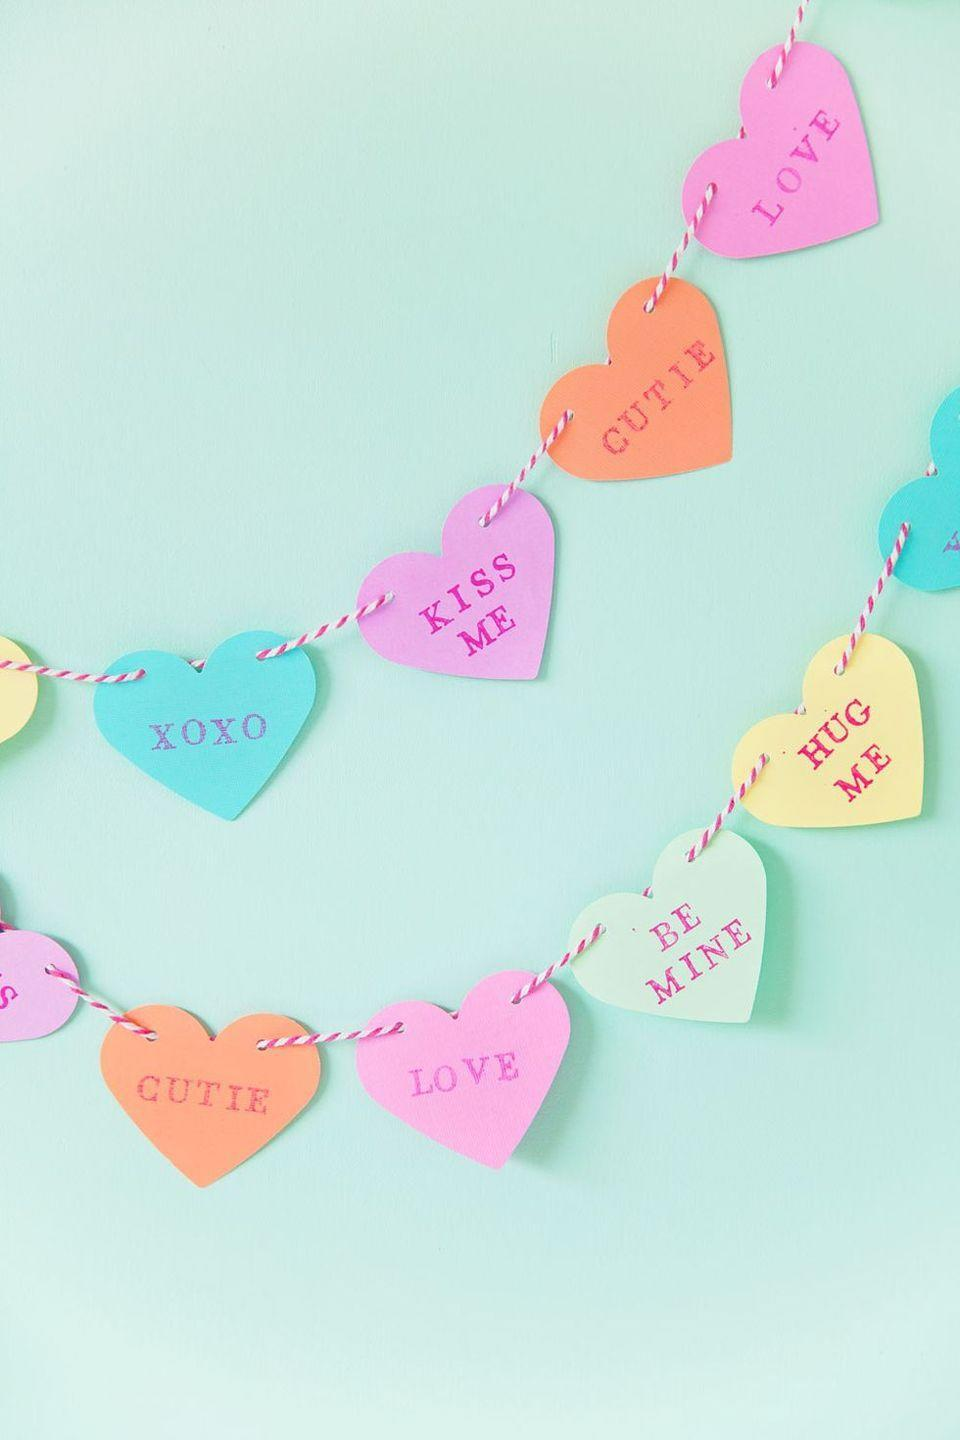 """<p>We love that this garland takes cues from those classic conversation heart candies. Bonus points if you include a few inside jokes of your own amongst the messages!</p><p><strong>Get the tutorial at <a href=""""https://tellloveandparty.com/2017/01/diy-candy-heart-garland.html"""" rel=""""nofollow noopener"""" target=""""_blank"""" data-ylk=""""slk:Tell Love and Party"""" class=""""link rapid-noclick-resp"""">Tell Love and Party</a>.</strong></p><p><a class=""""link rapid-noclick-resp"""" href=""""https://www.amazon.com/Extreme-Variety-American-Crafts-Brights/dp/B00GXG0CVW?tag=syn-yahoo-20&ascsubtag=%5Bartid%7C10050.g.2971%5Bsrc%7Cyahoo-us"""" rel=""""nofollow noopener"""" target=""""_blank"""" data-ylk=""""slk:SHOP BAKER'S TWINE"""">SHOP BAKER'S TWINE</a></p>"""